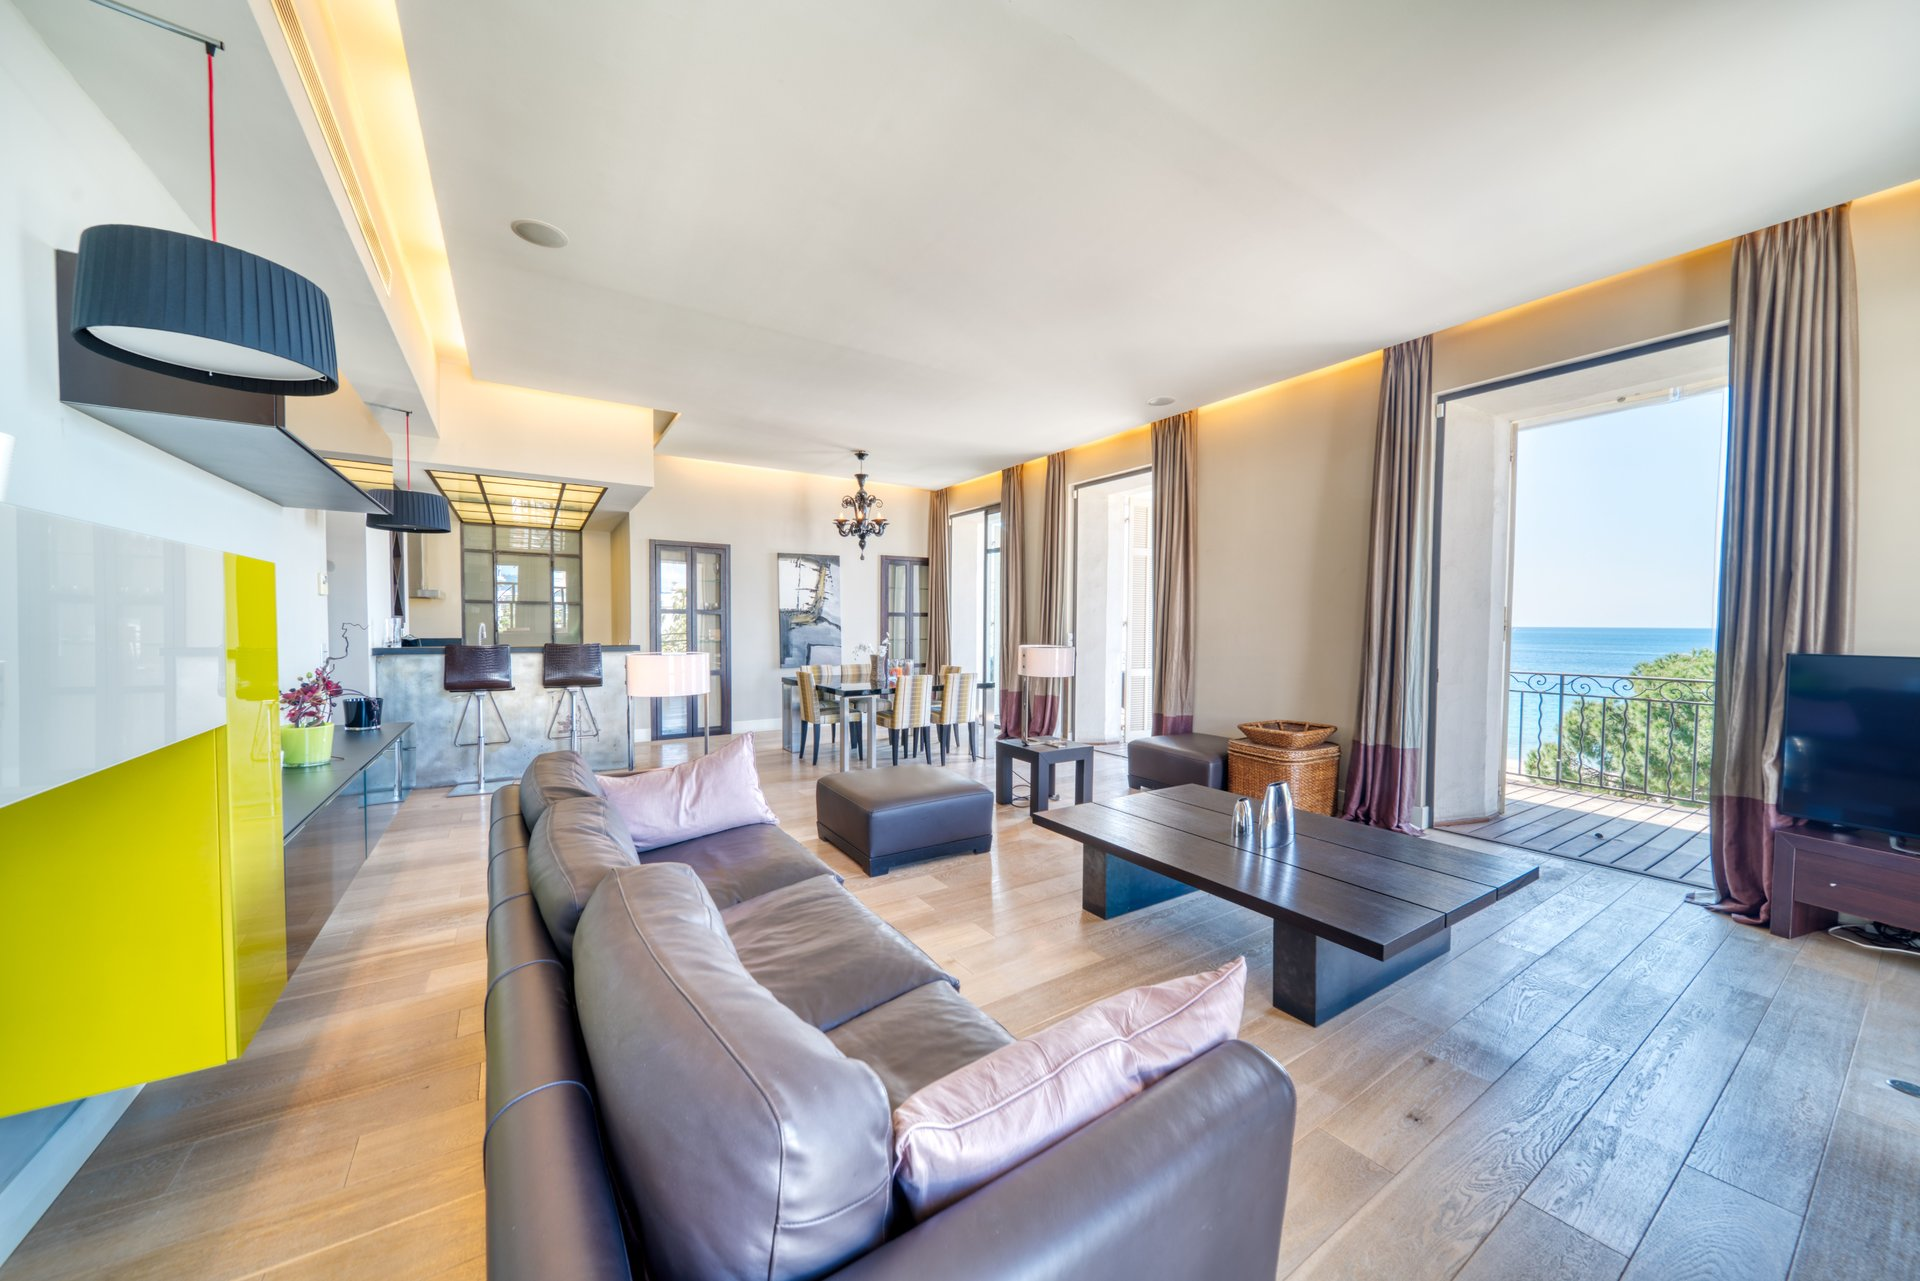 CANNES Croisette - Renovated Duplex for sale by CANNES AGENCY